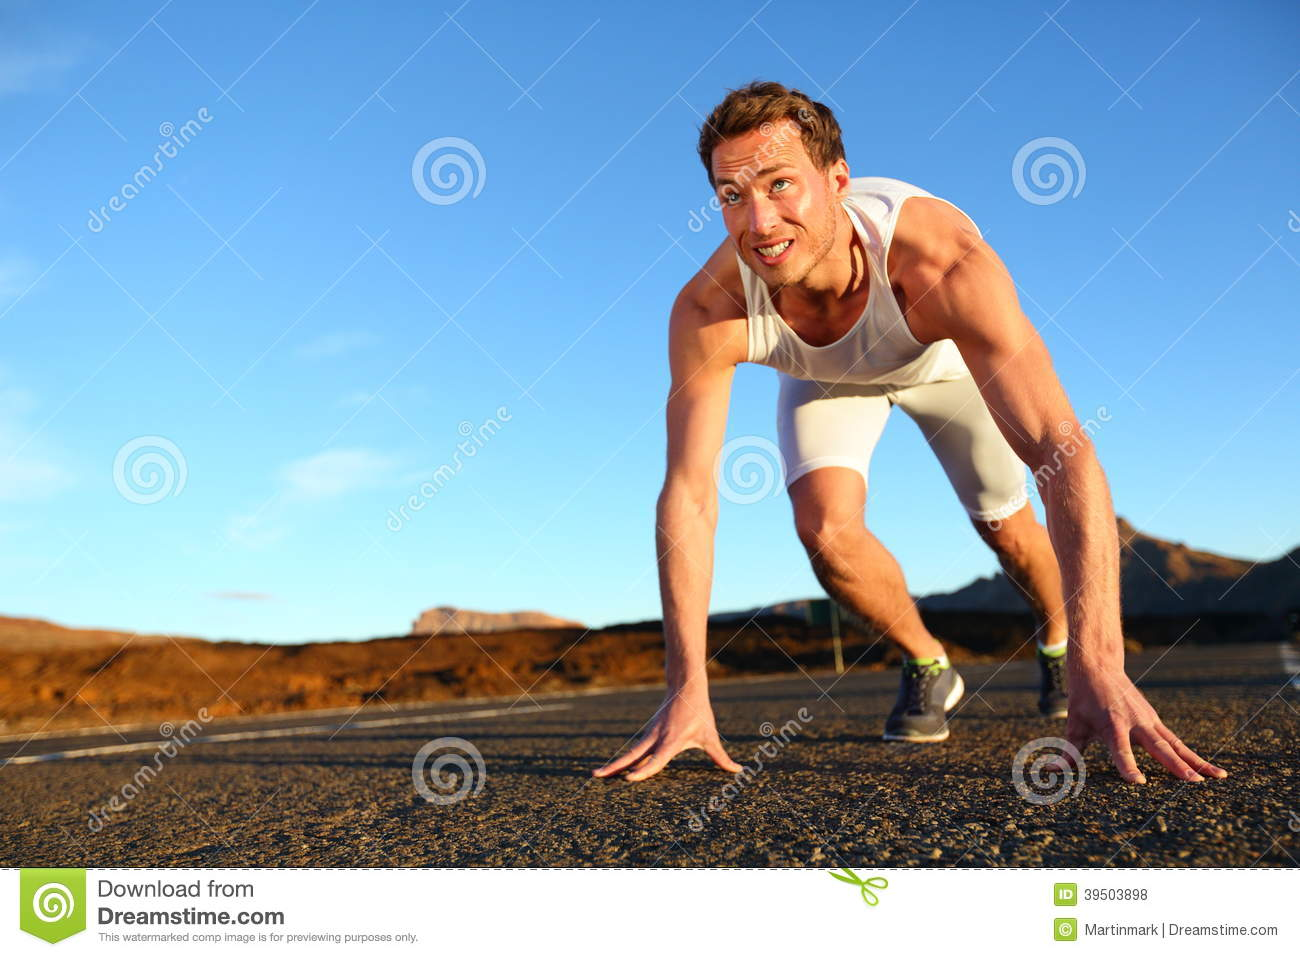 Sprinter Starting Sprint - Man Running Stock Photo - Image ...